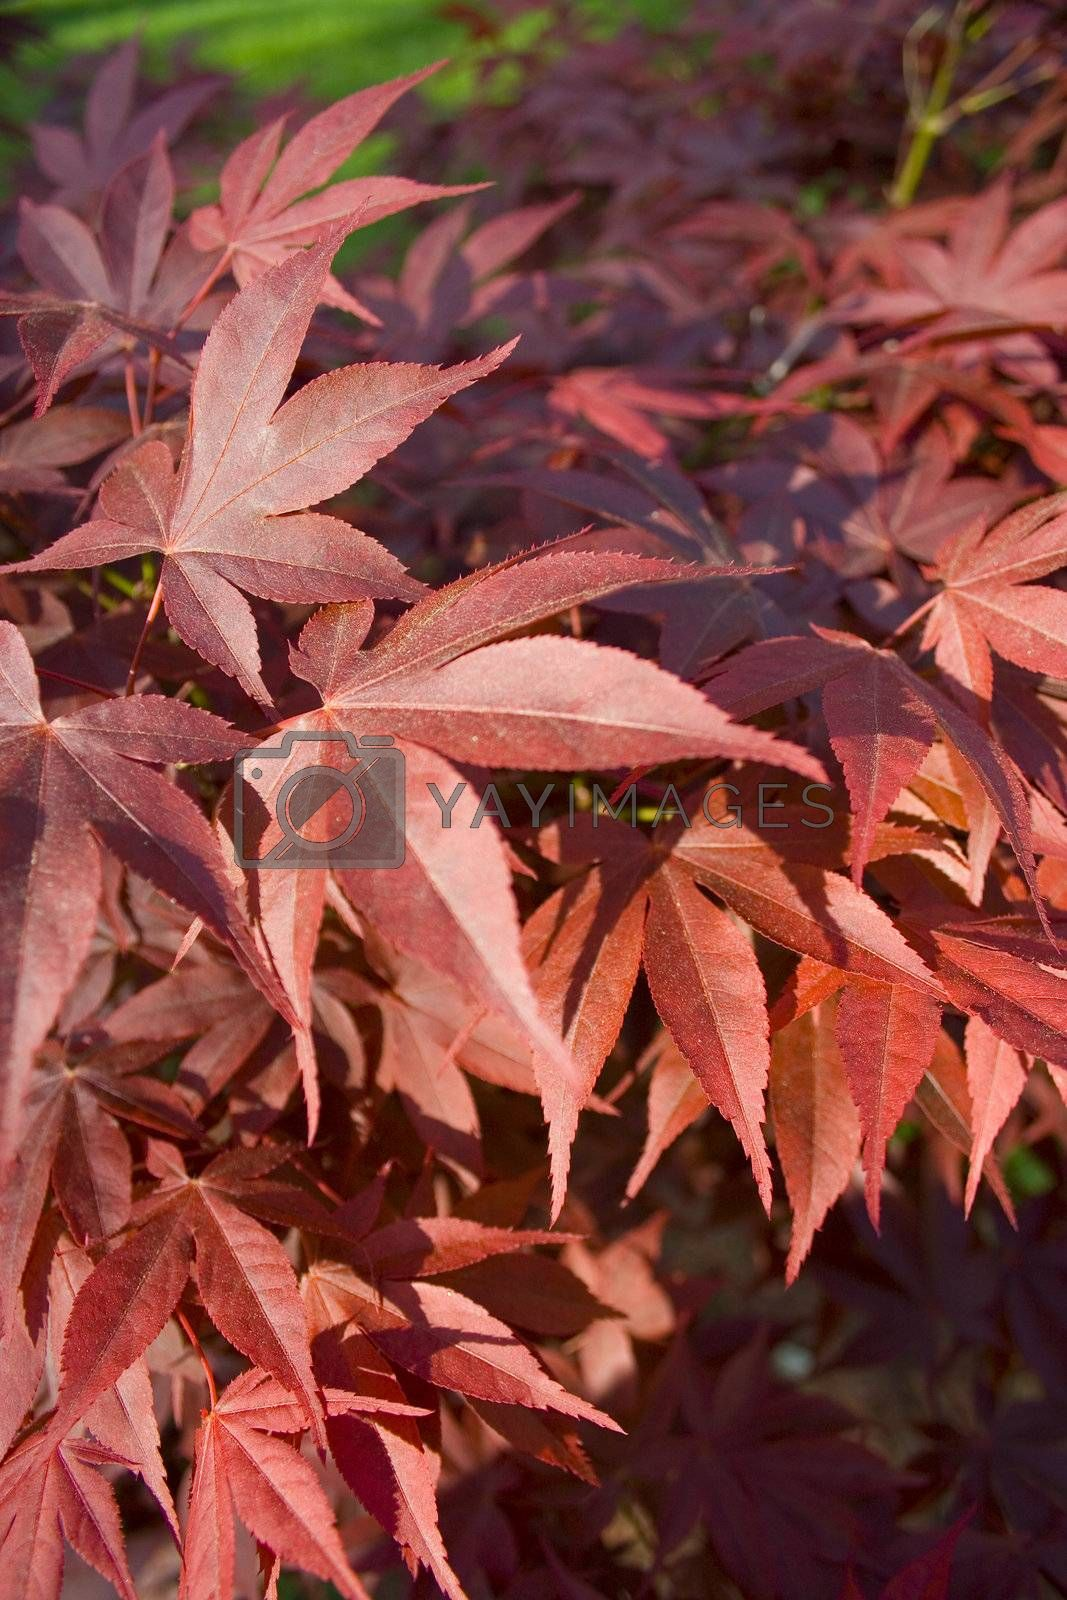 A closeup shot of red maple leaves on a red maple leaf tree.